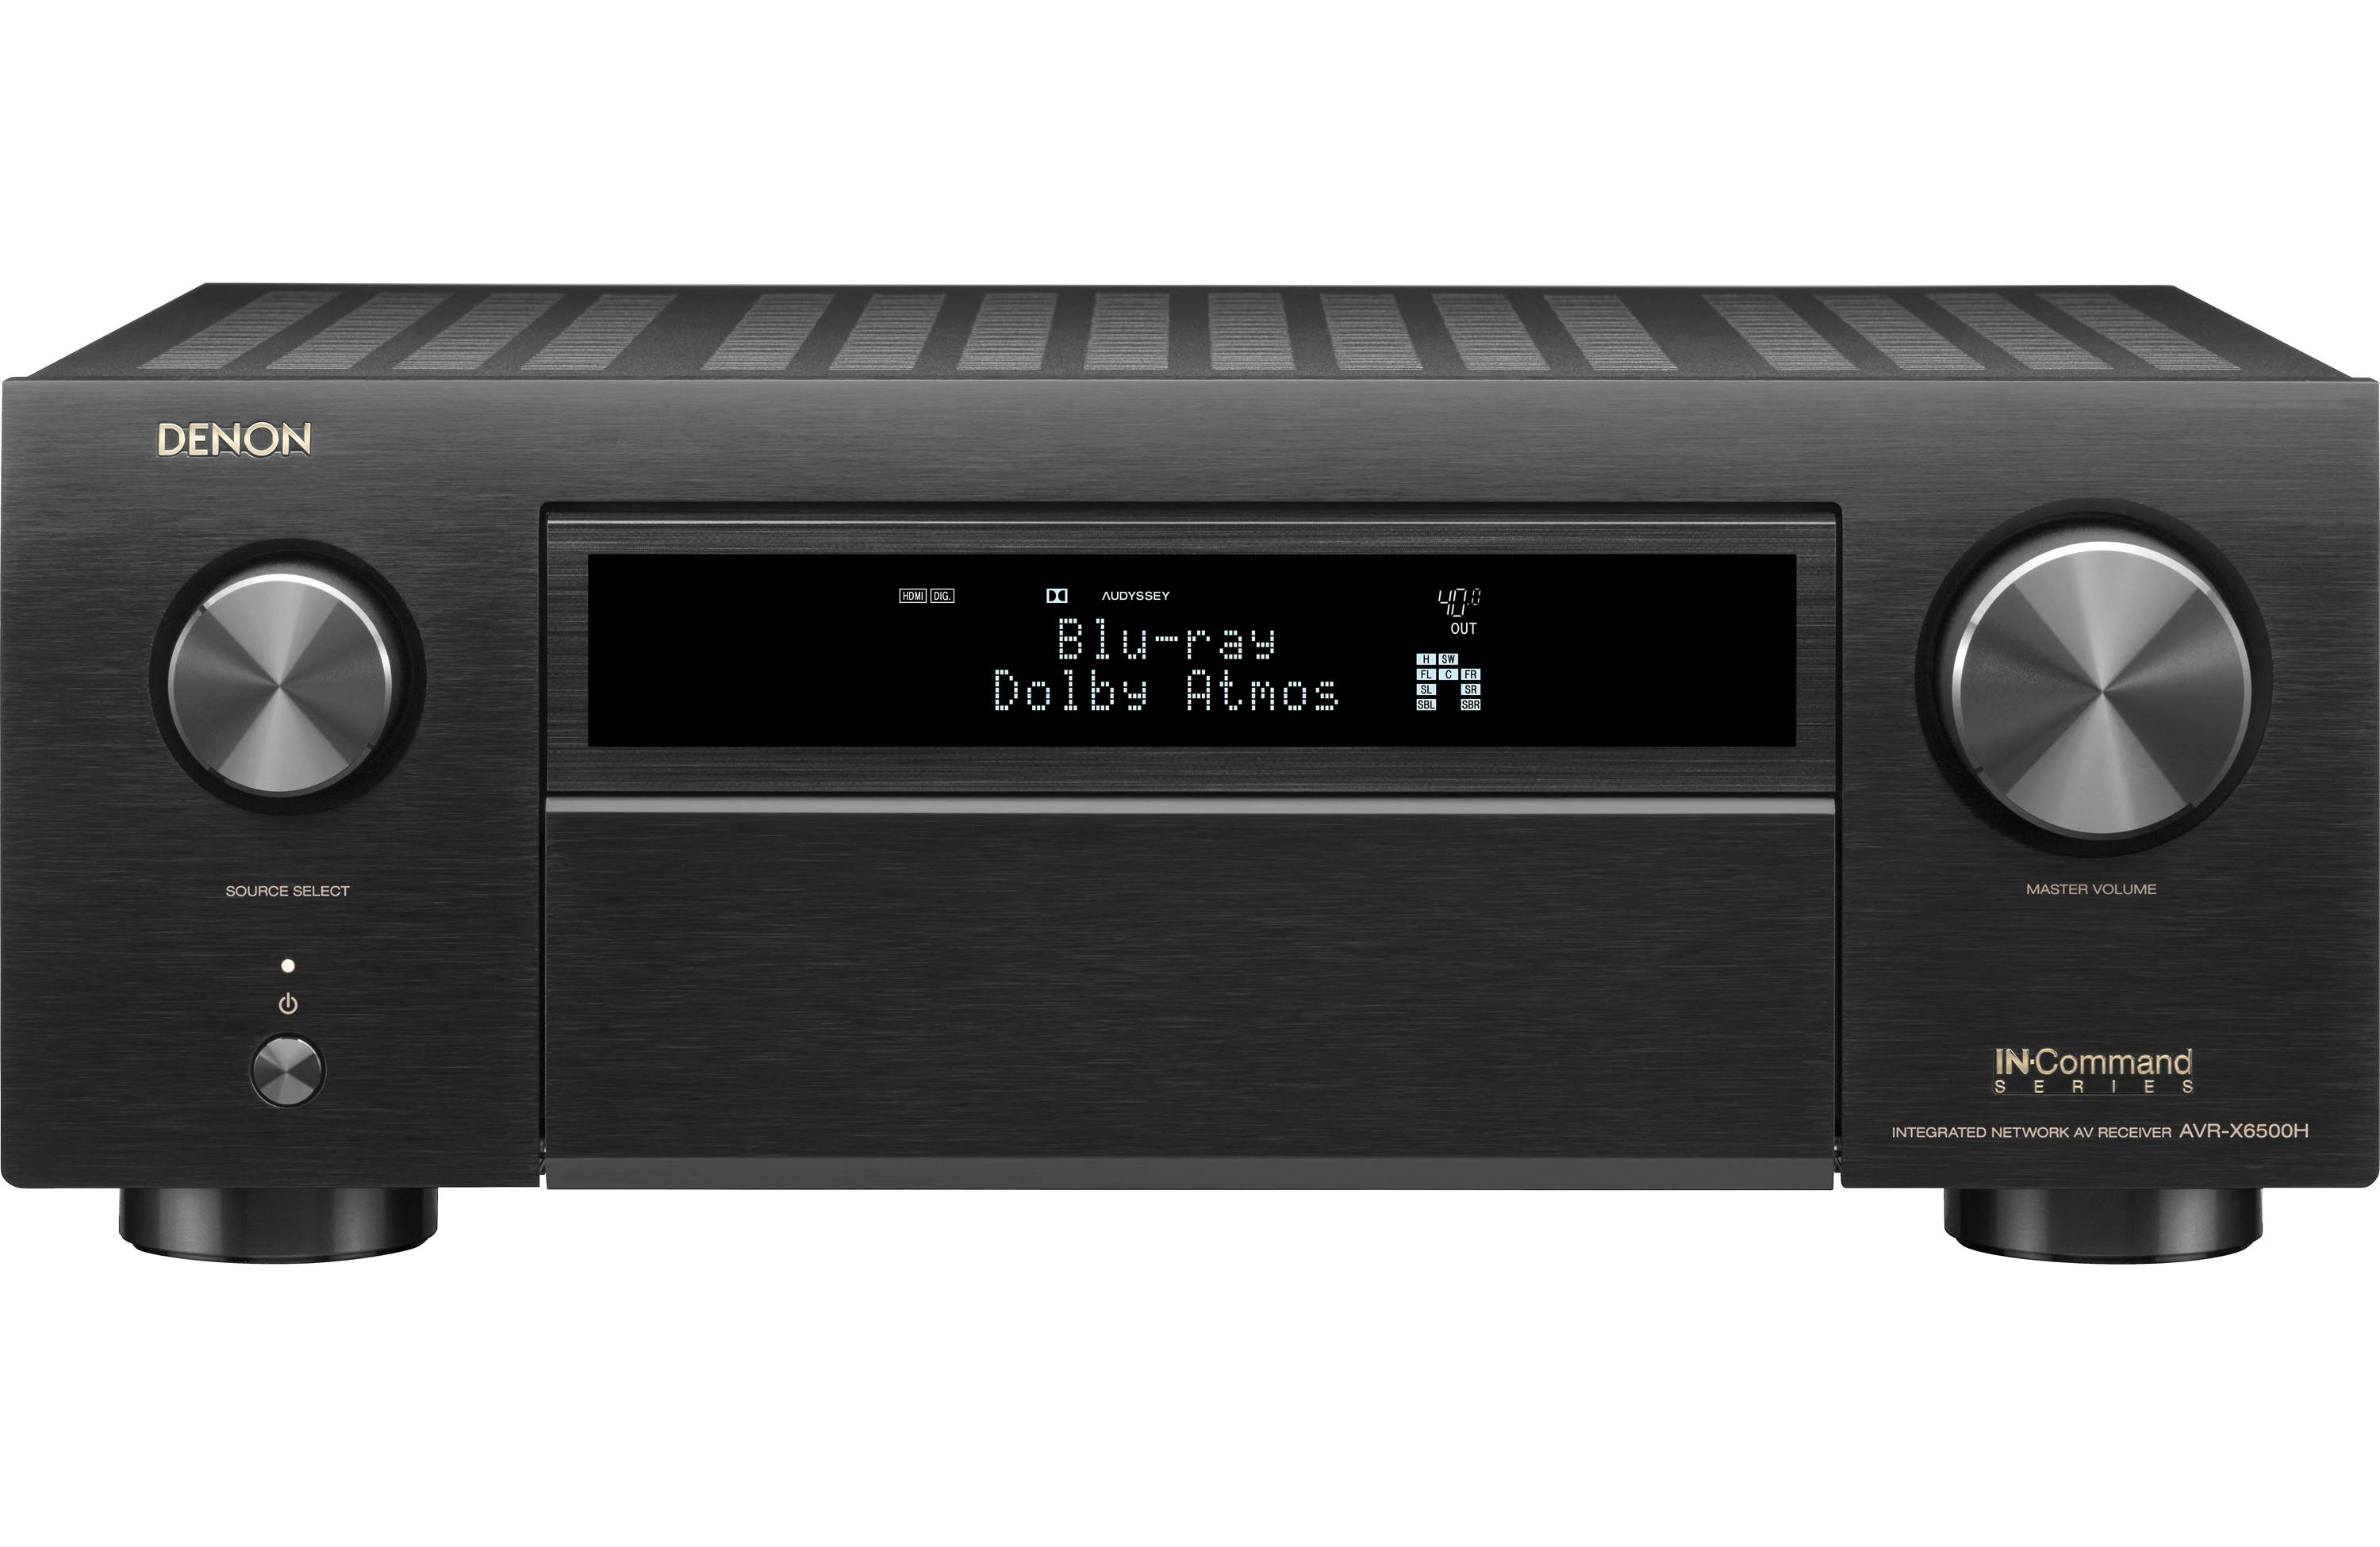 Denon AVR-X6500H Review - Features and Specs | ZKelectronics